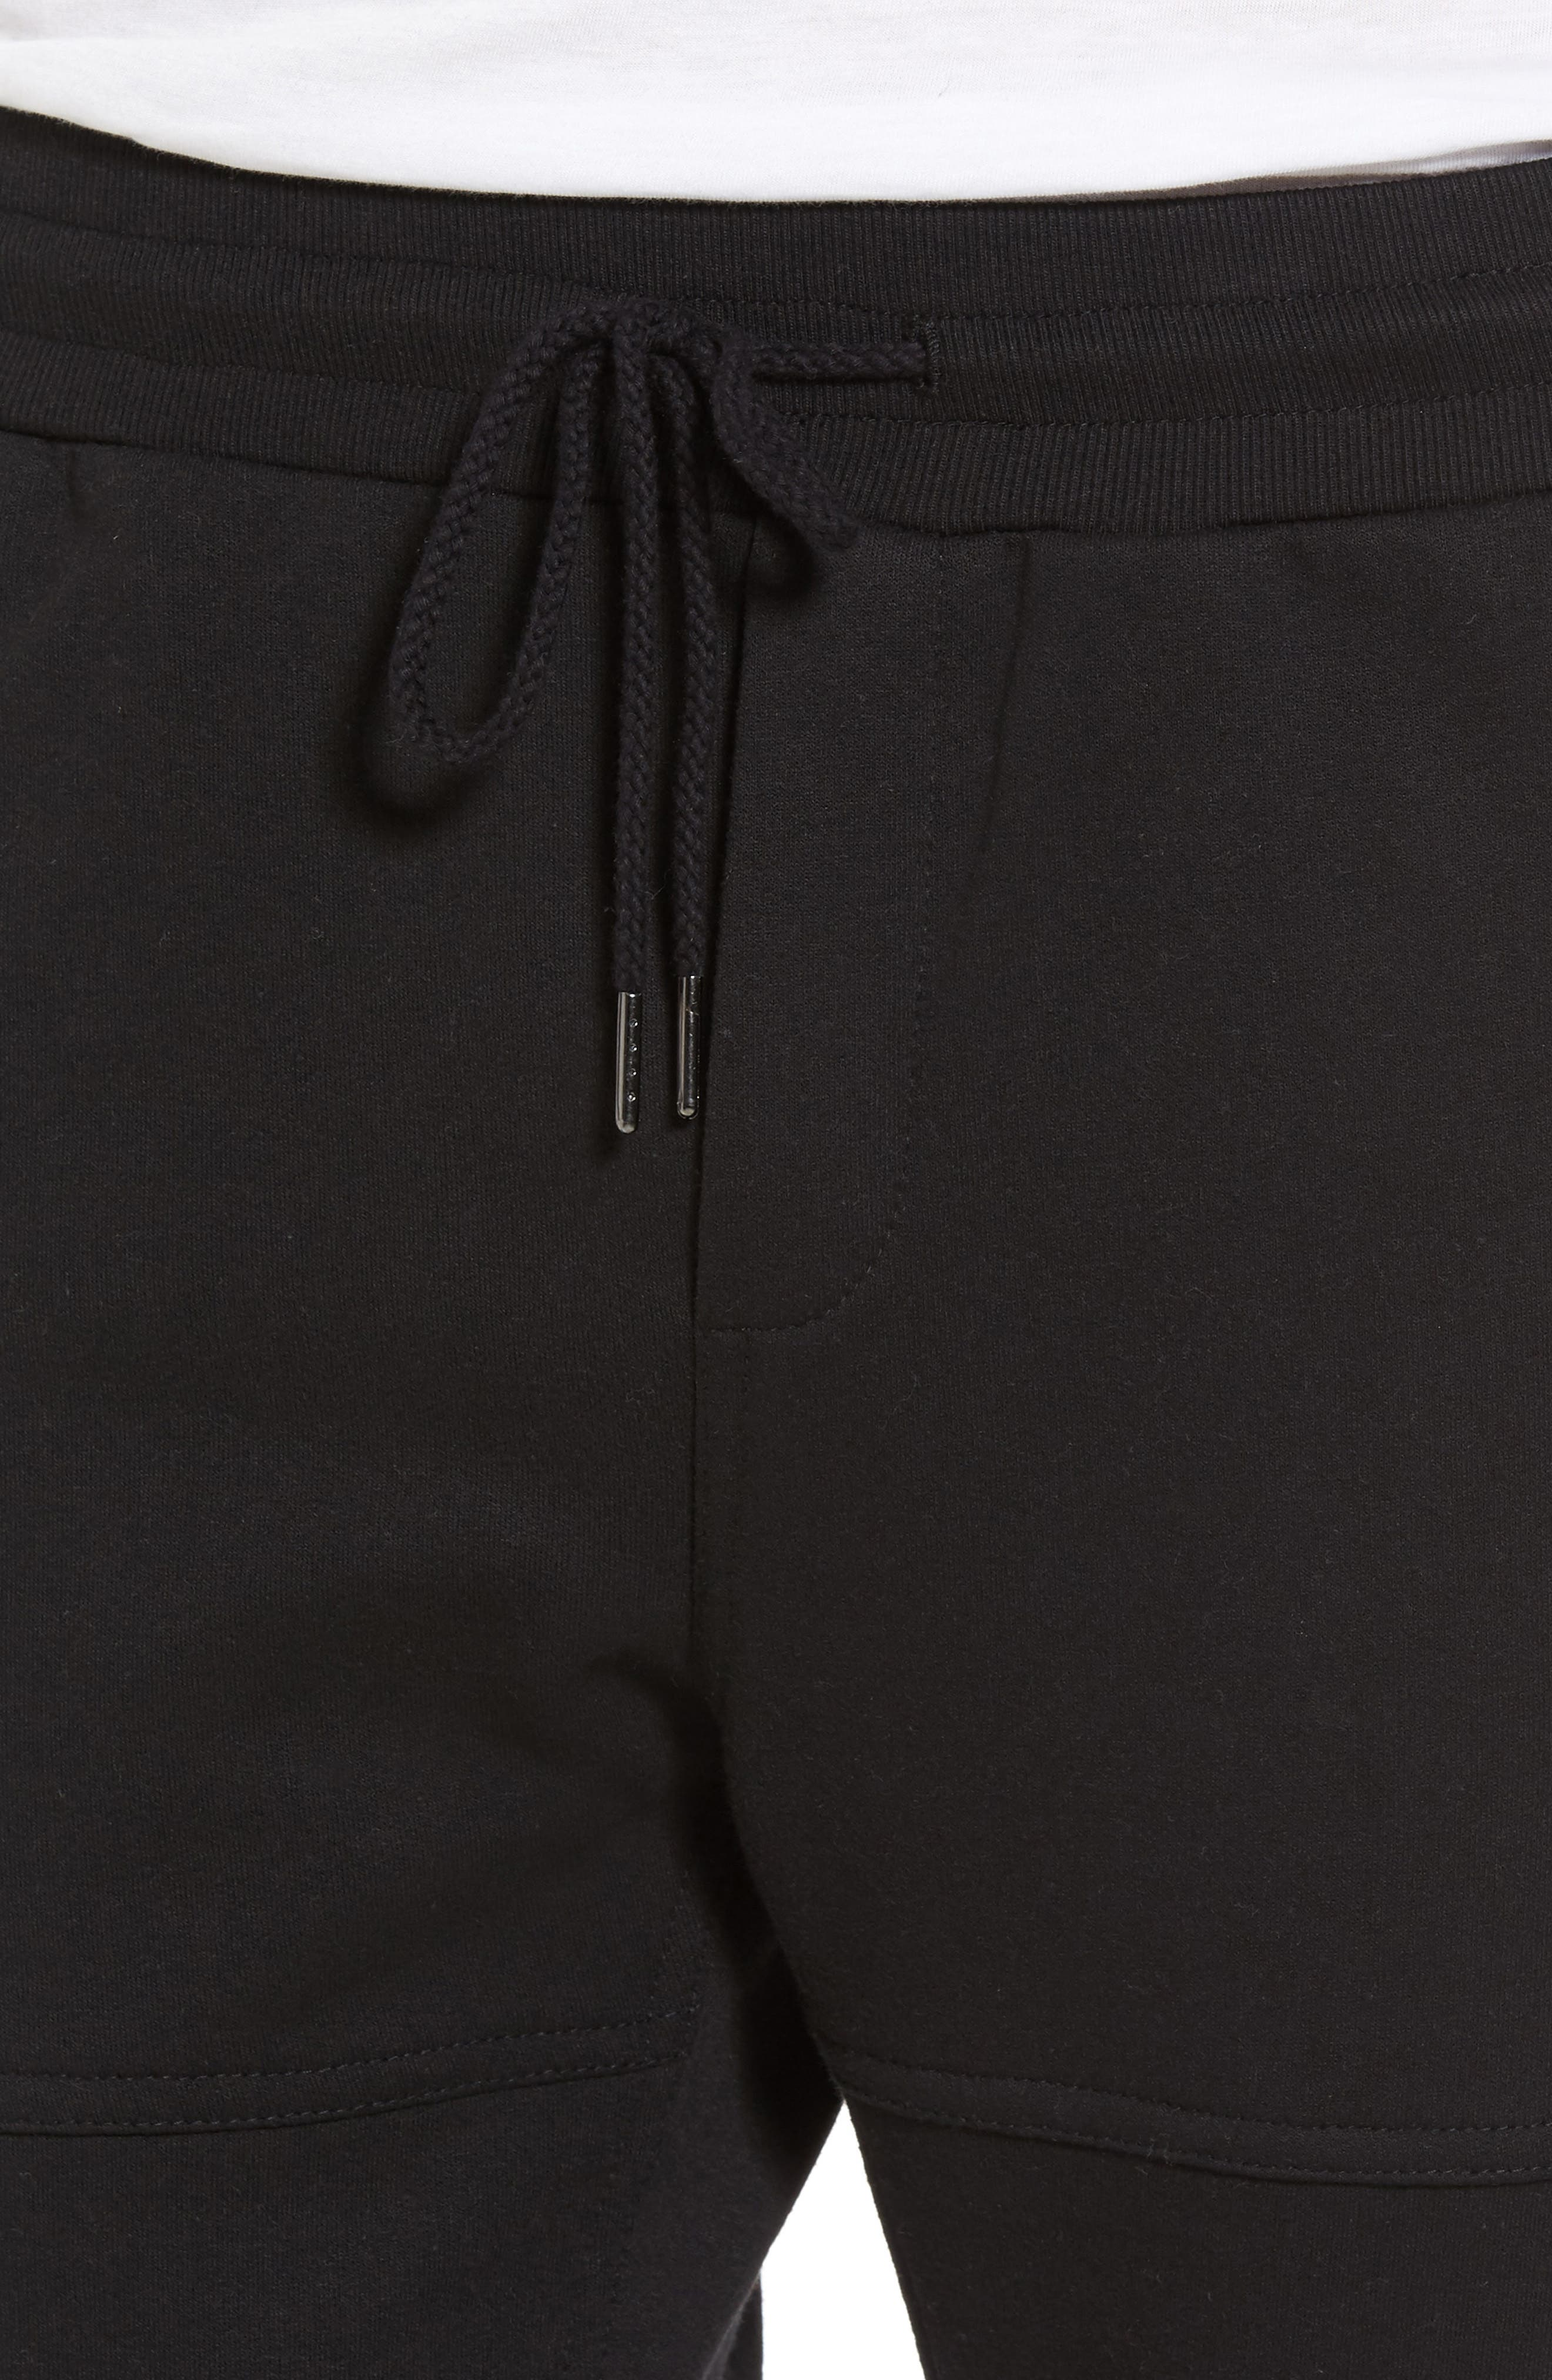 French Terry Sweatpants,                             Alternate thumbnail 4, color,                             001